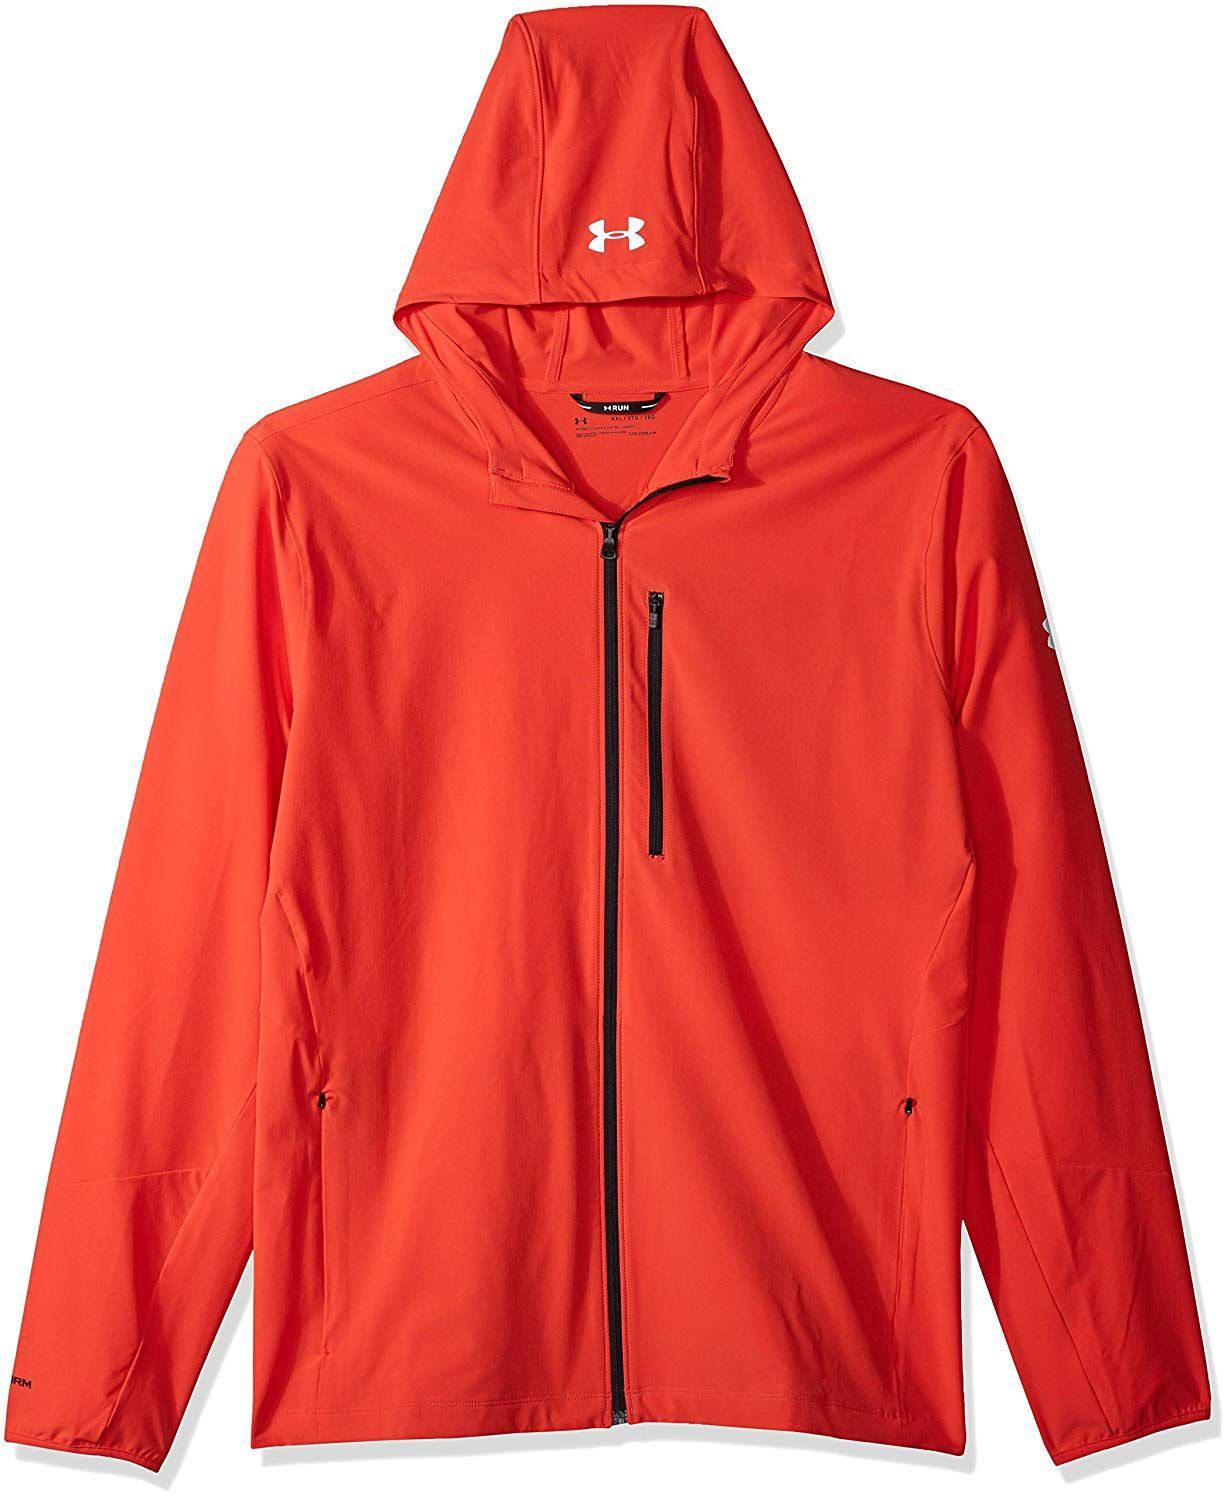 Amazon Com Under Armour Men S Outrun The Storm Jacket Clothing N